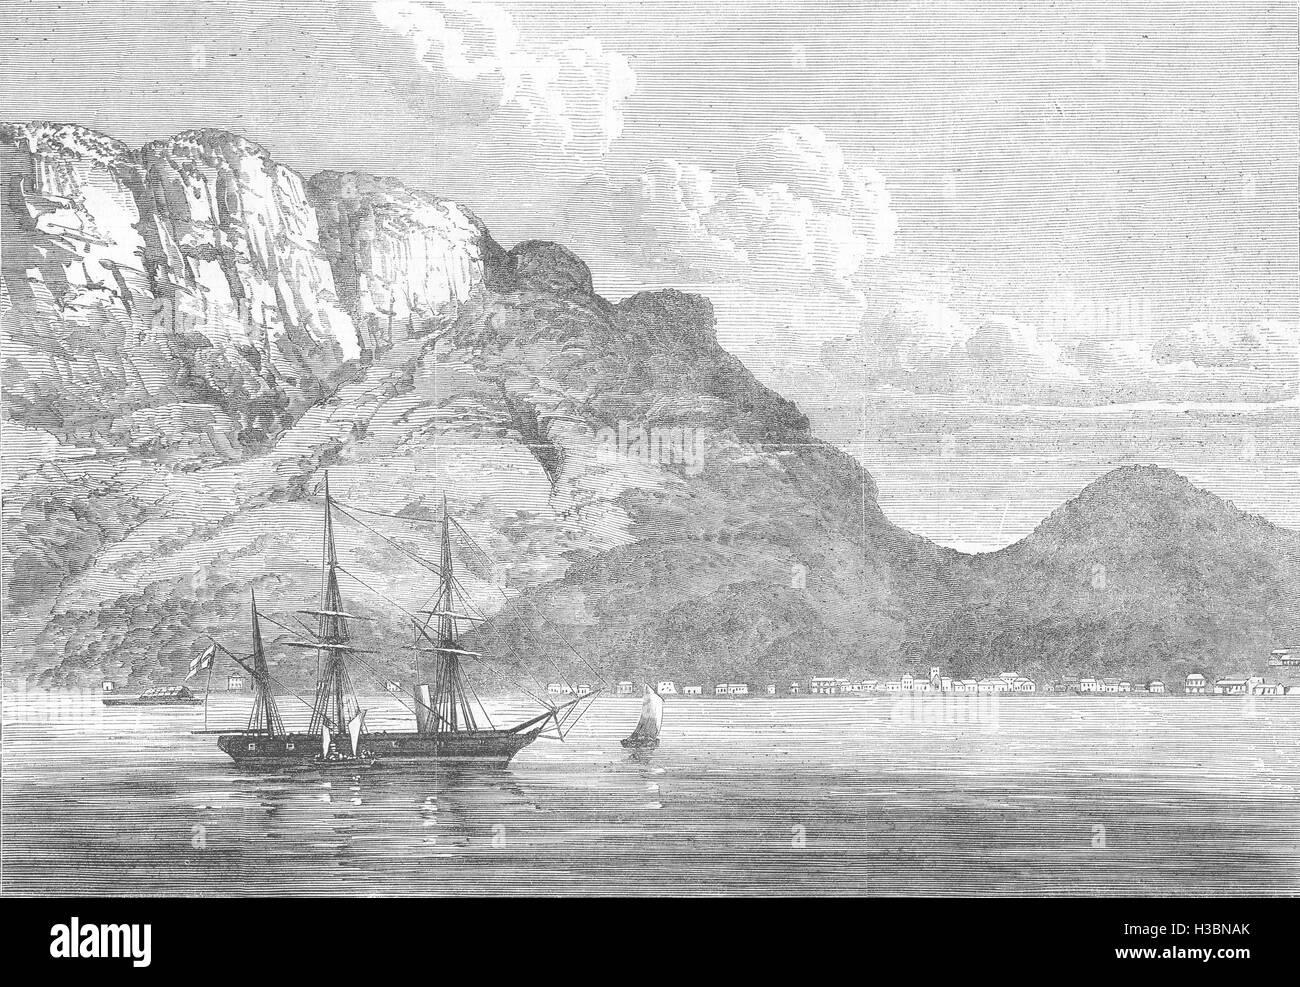 SEYCHELLES HMS Lyra disembarking liberated slaves at Port Victoria 1867. The Illustrated London News - Stock Image